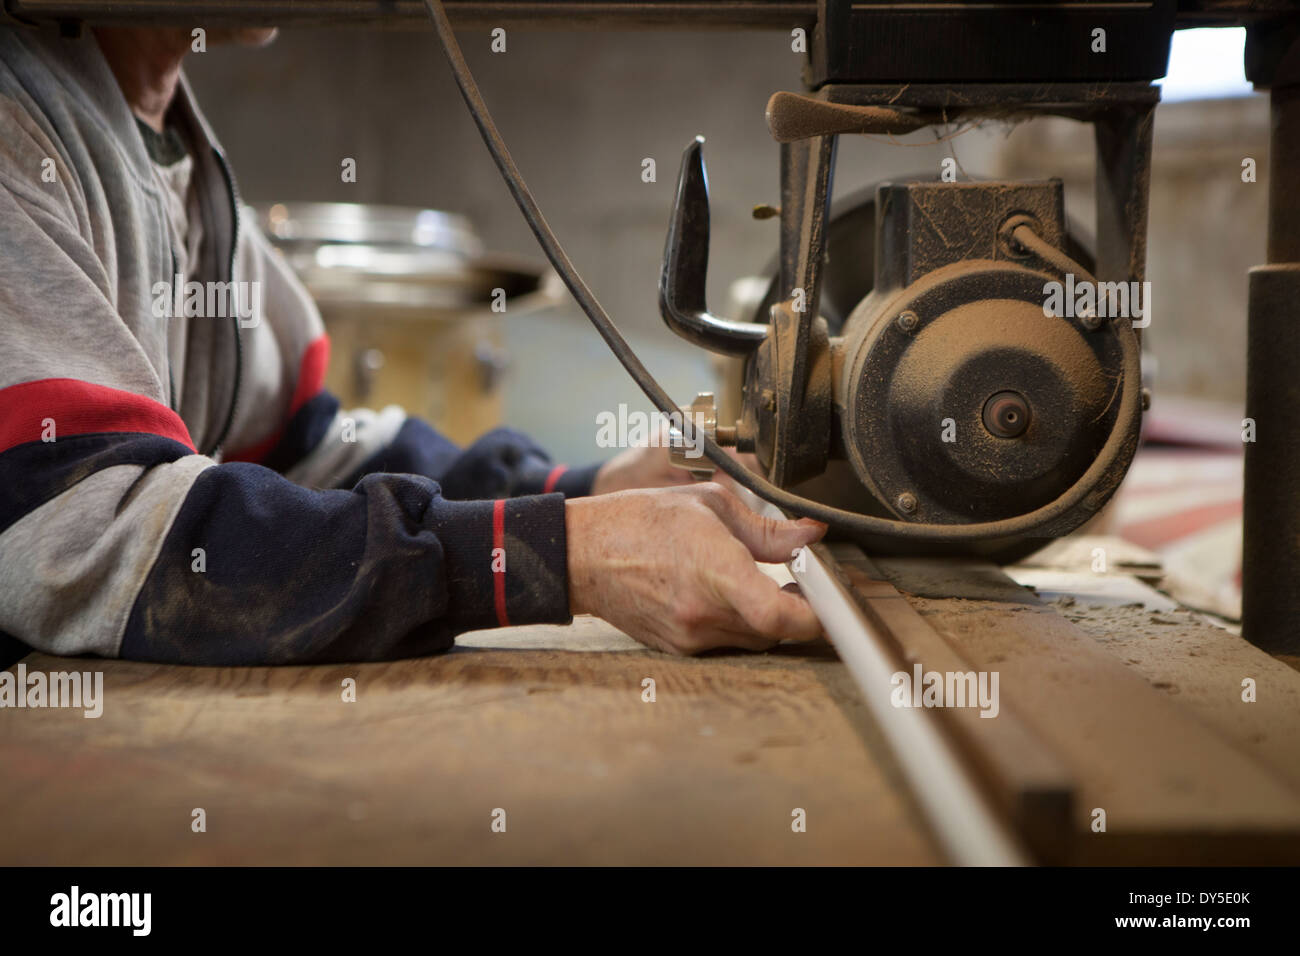 Close up of man using radial arm saw in workshop - Stock Image